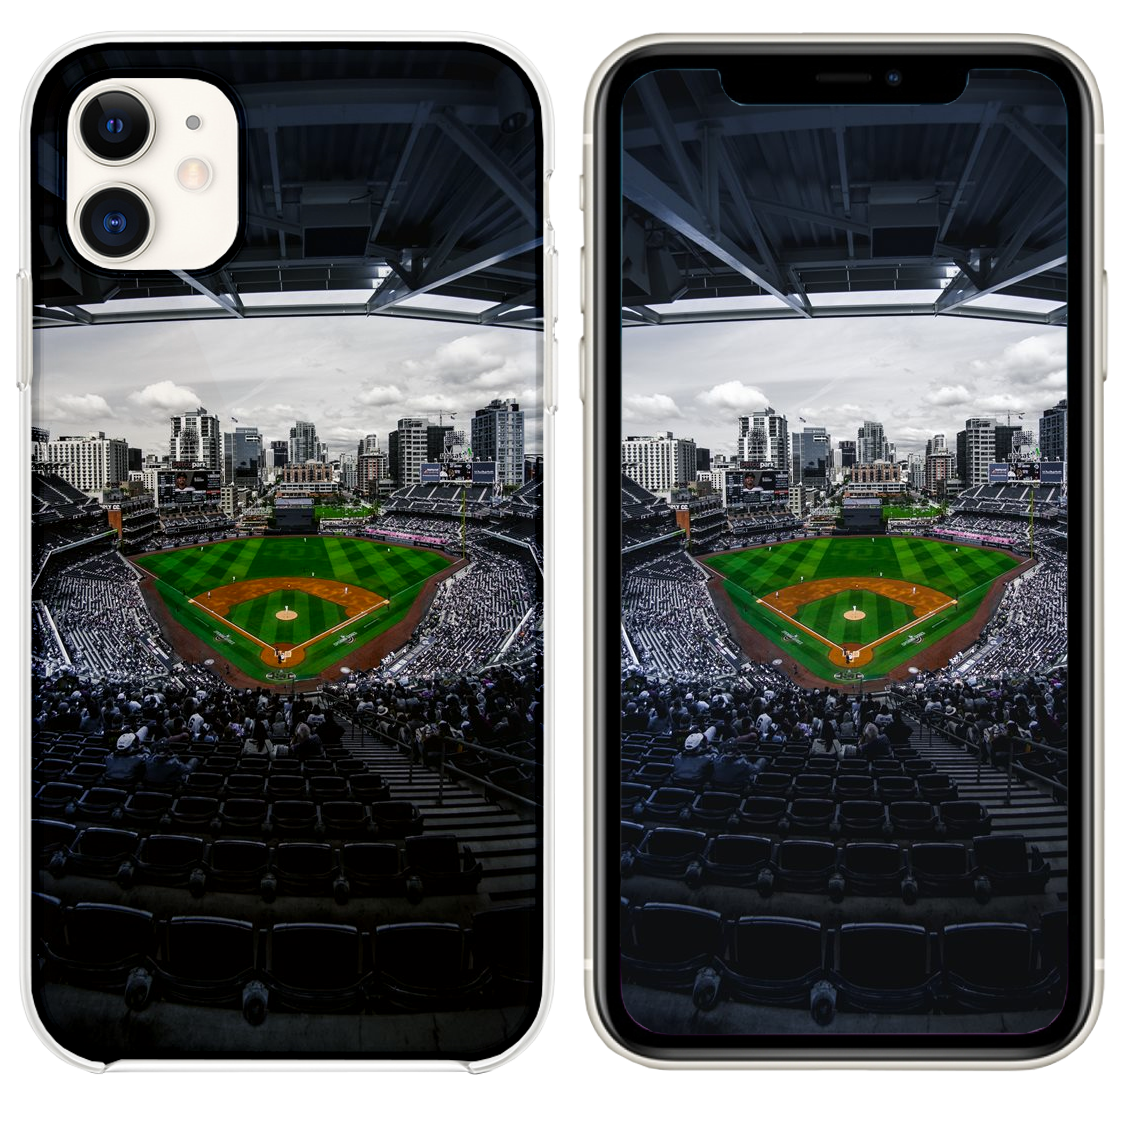 Petco Park San Diego United States iPhone 11 case and wallpaper Petco Park San Diego United States iPhone 11 case and wallpaper